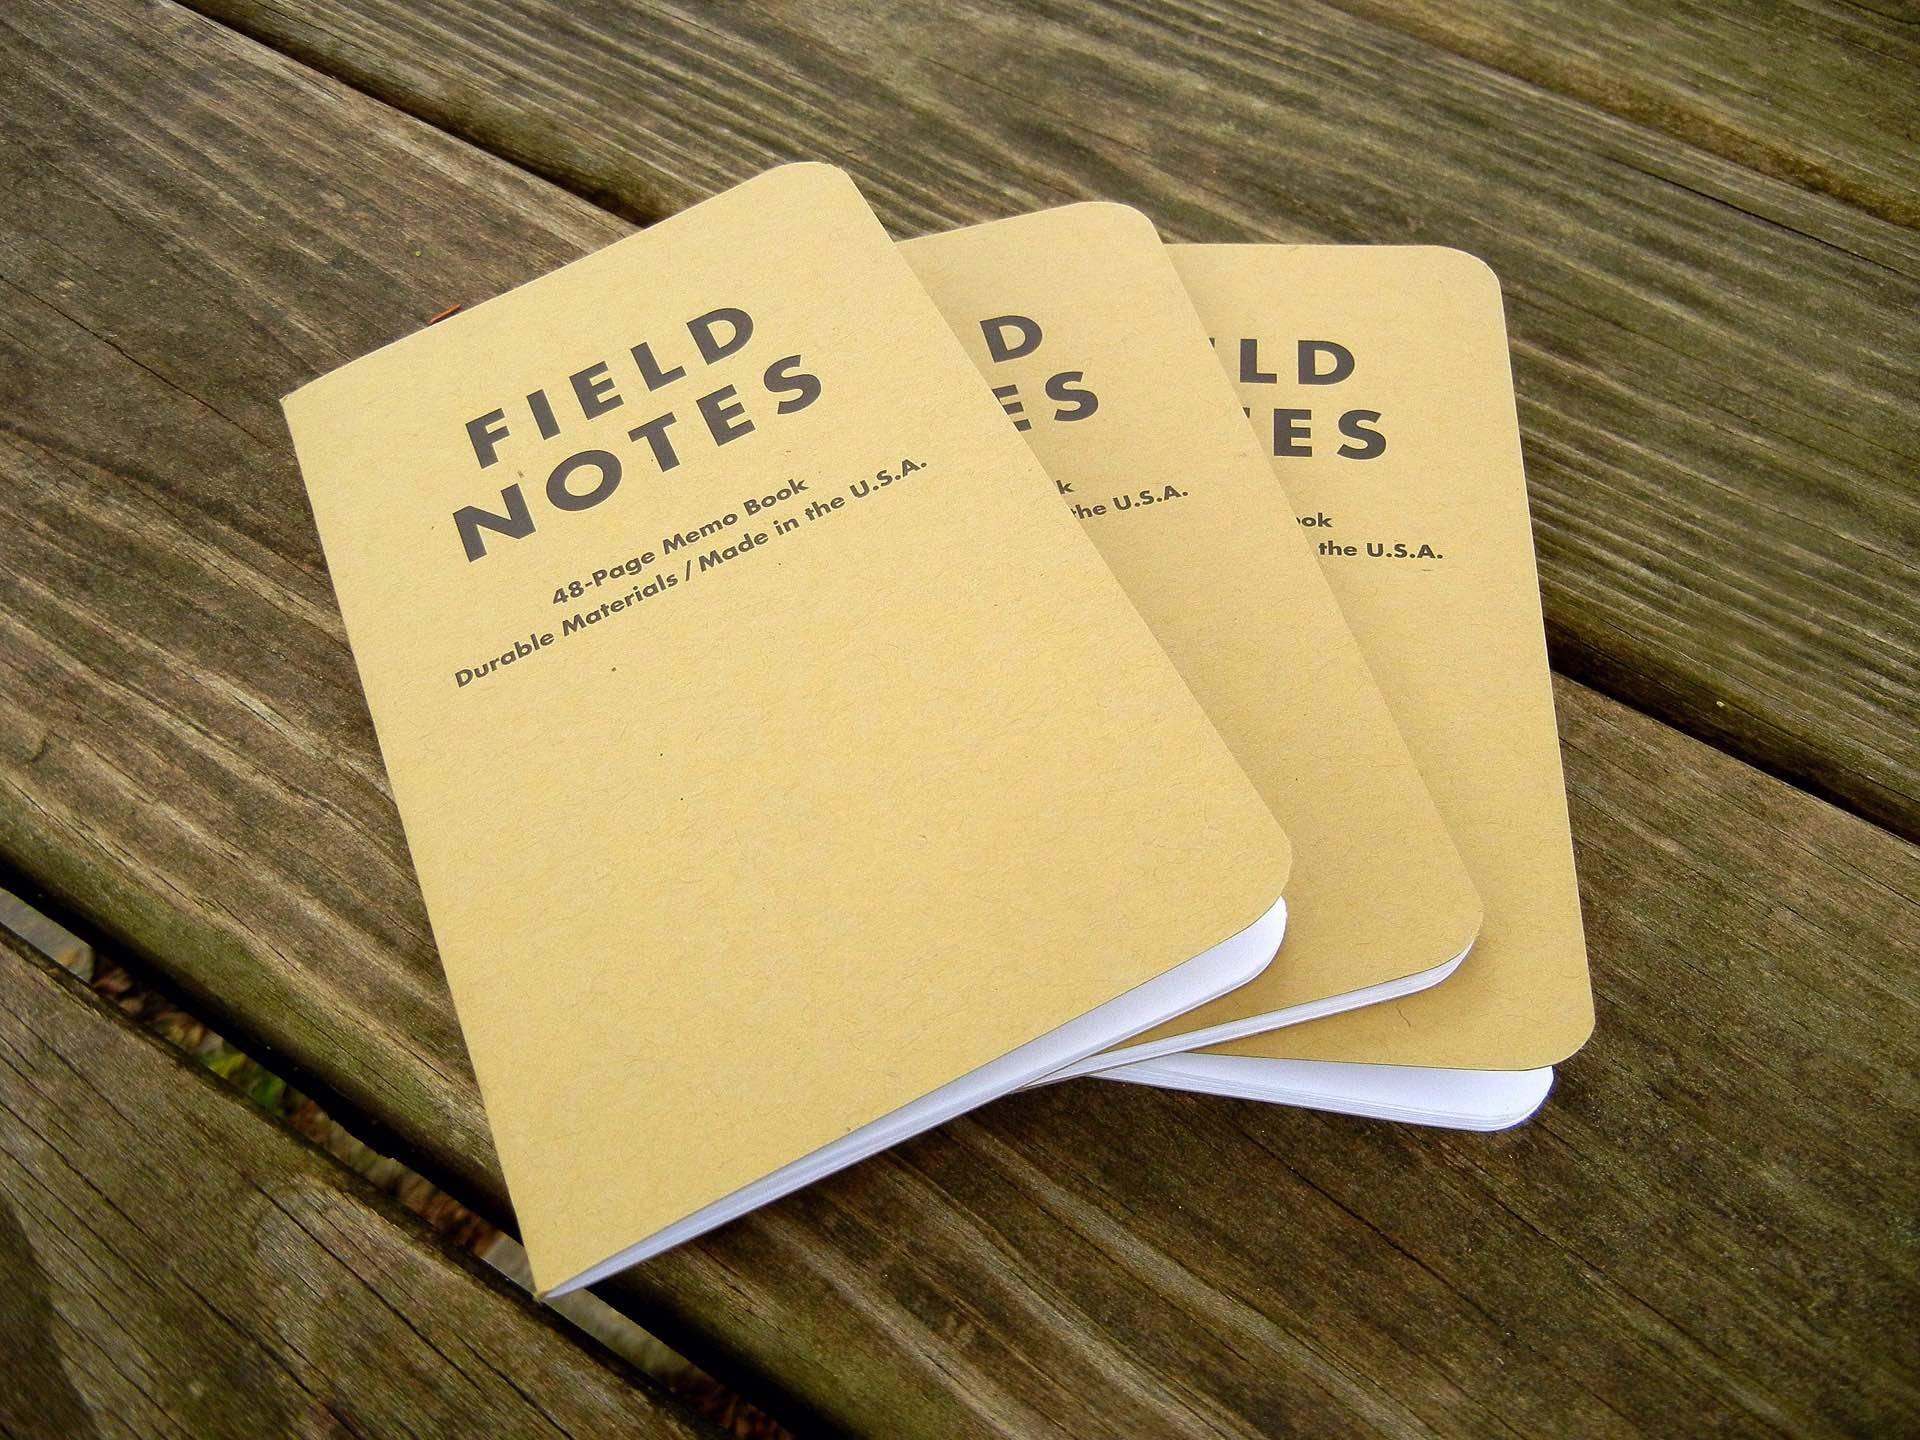 Field Notes memo books. ($10 per 3-pack)Photo: Nick Yoder